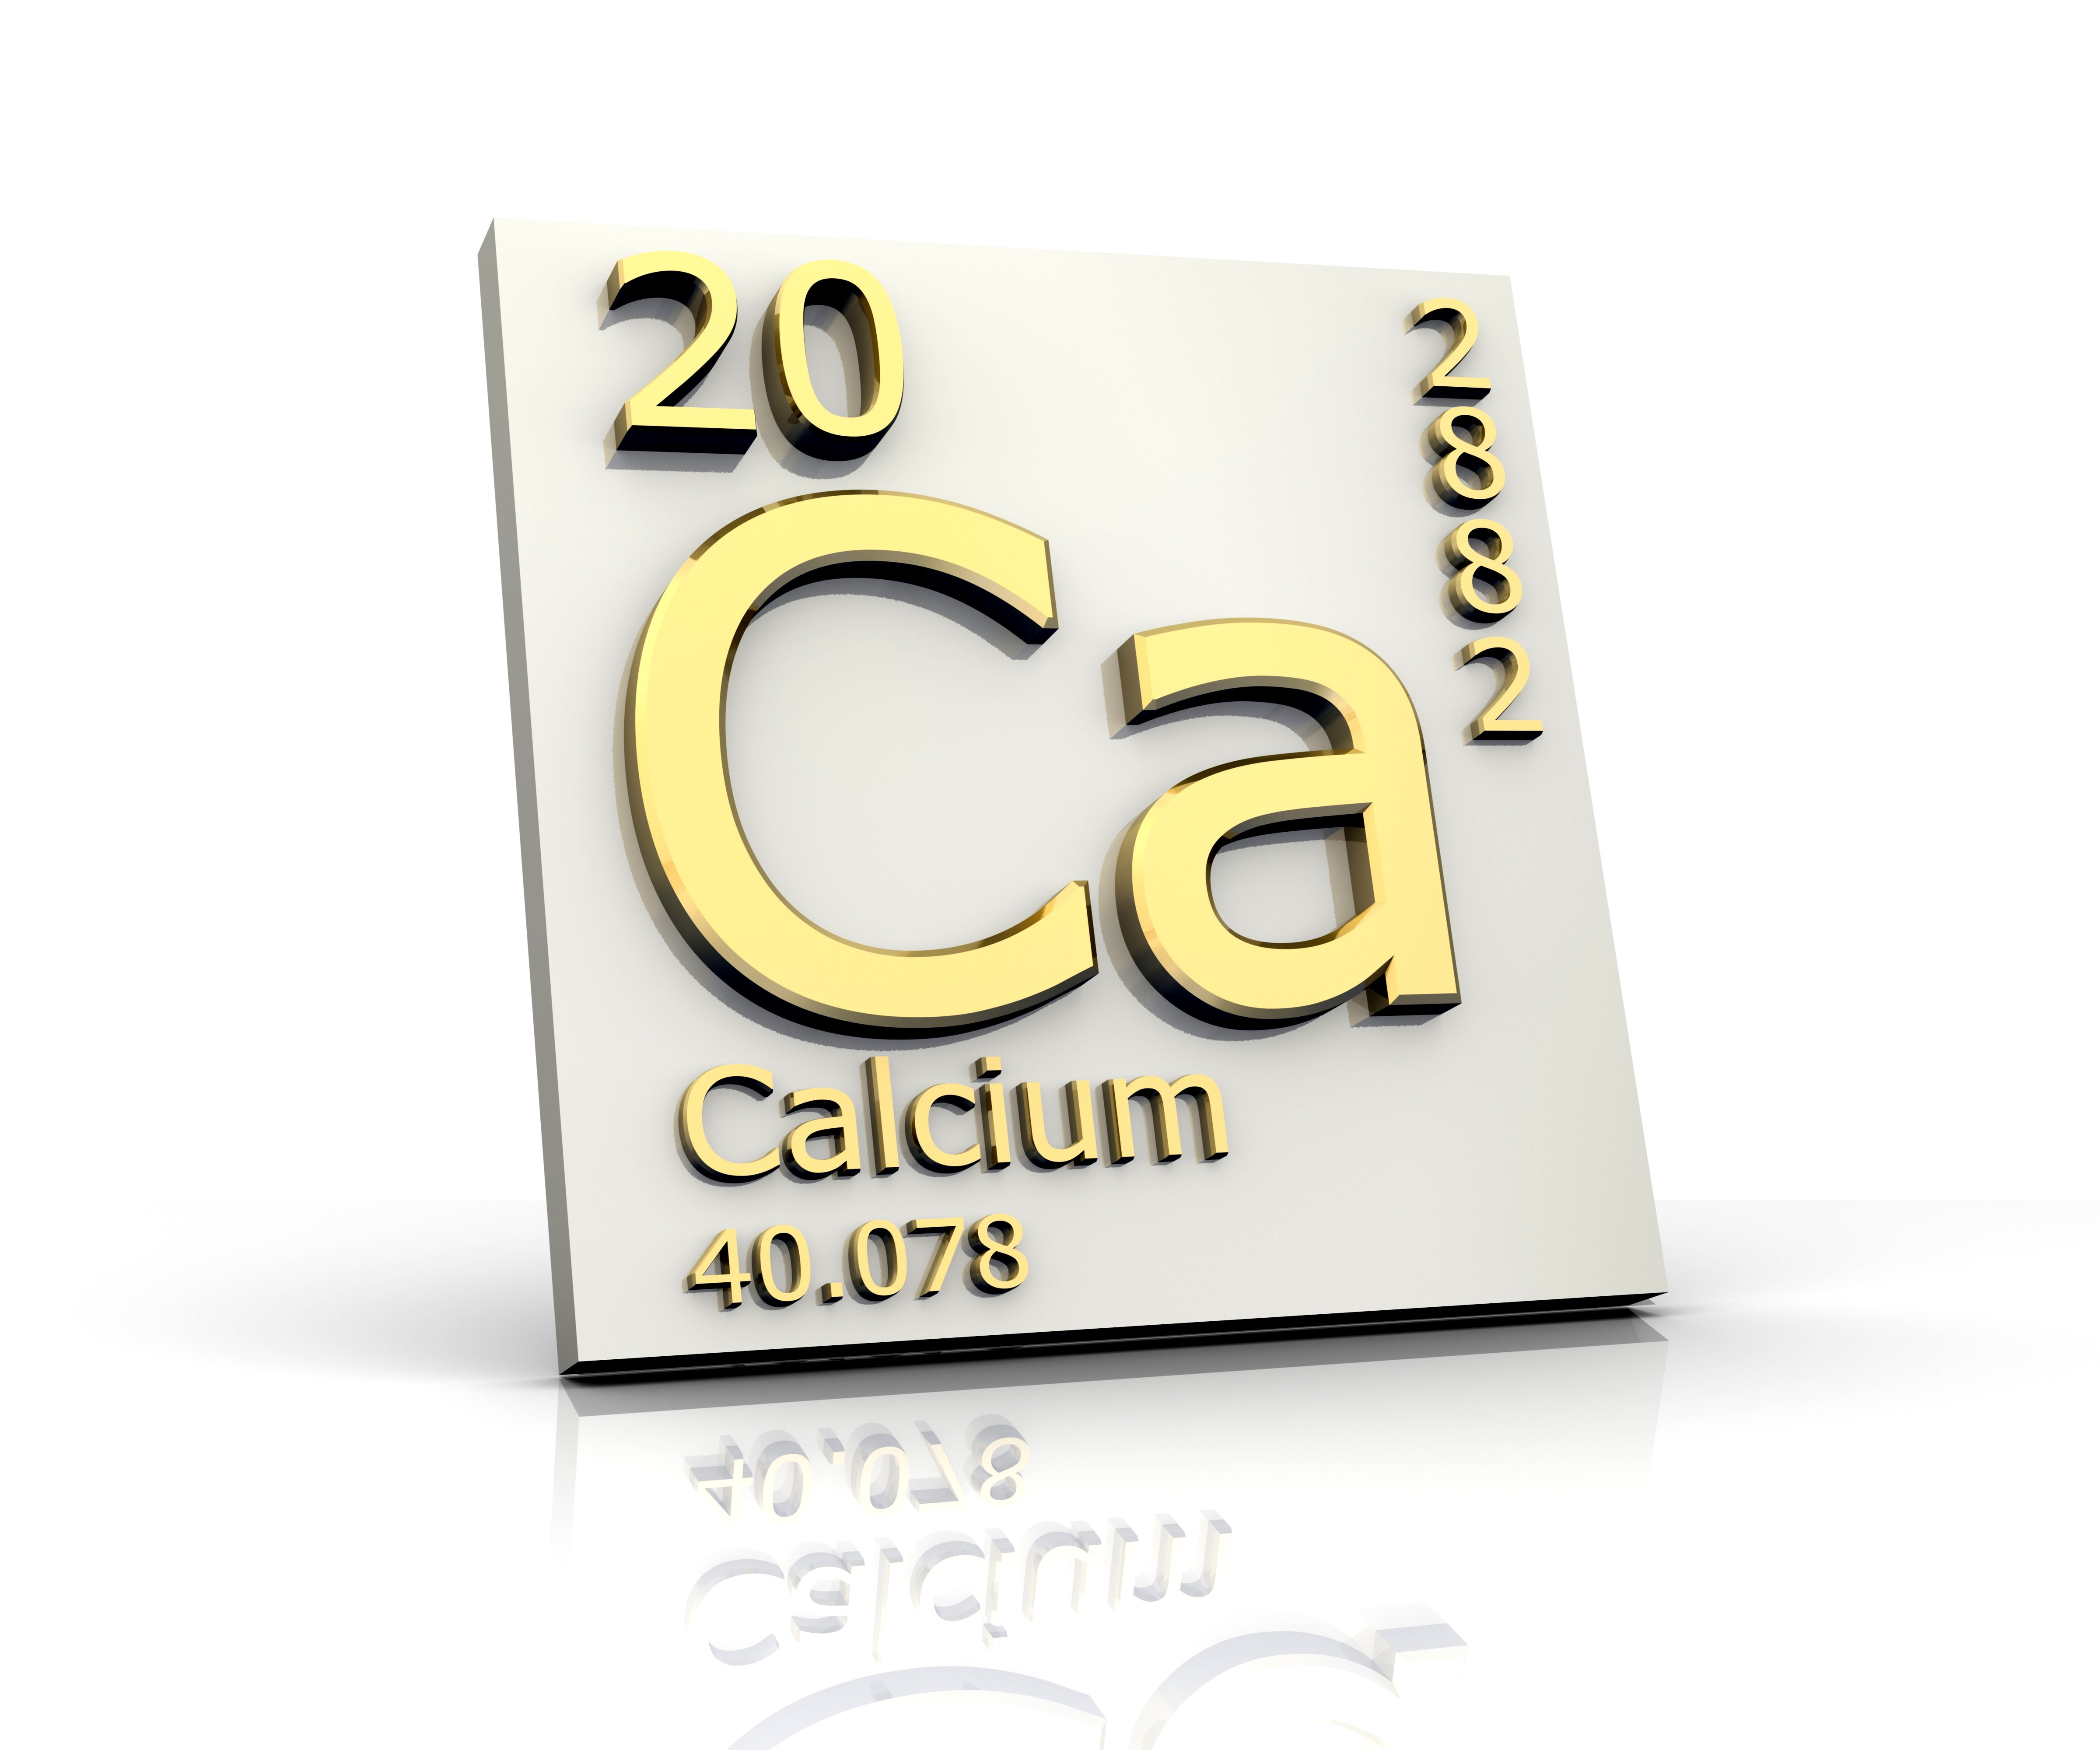 4315577 - calcium form periodic table of elements